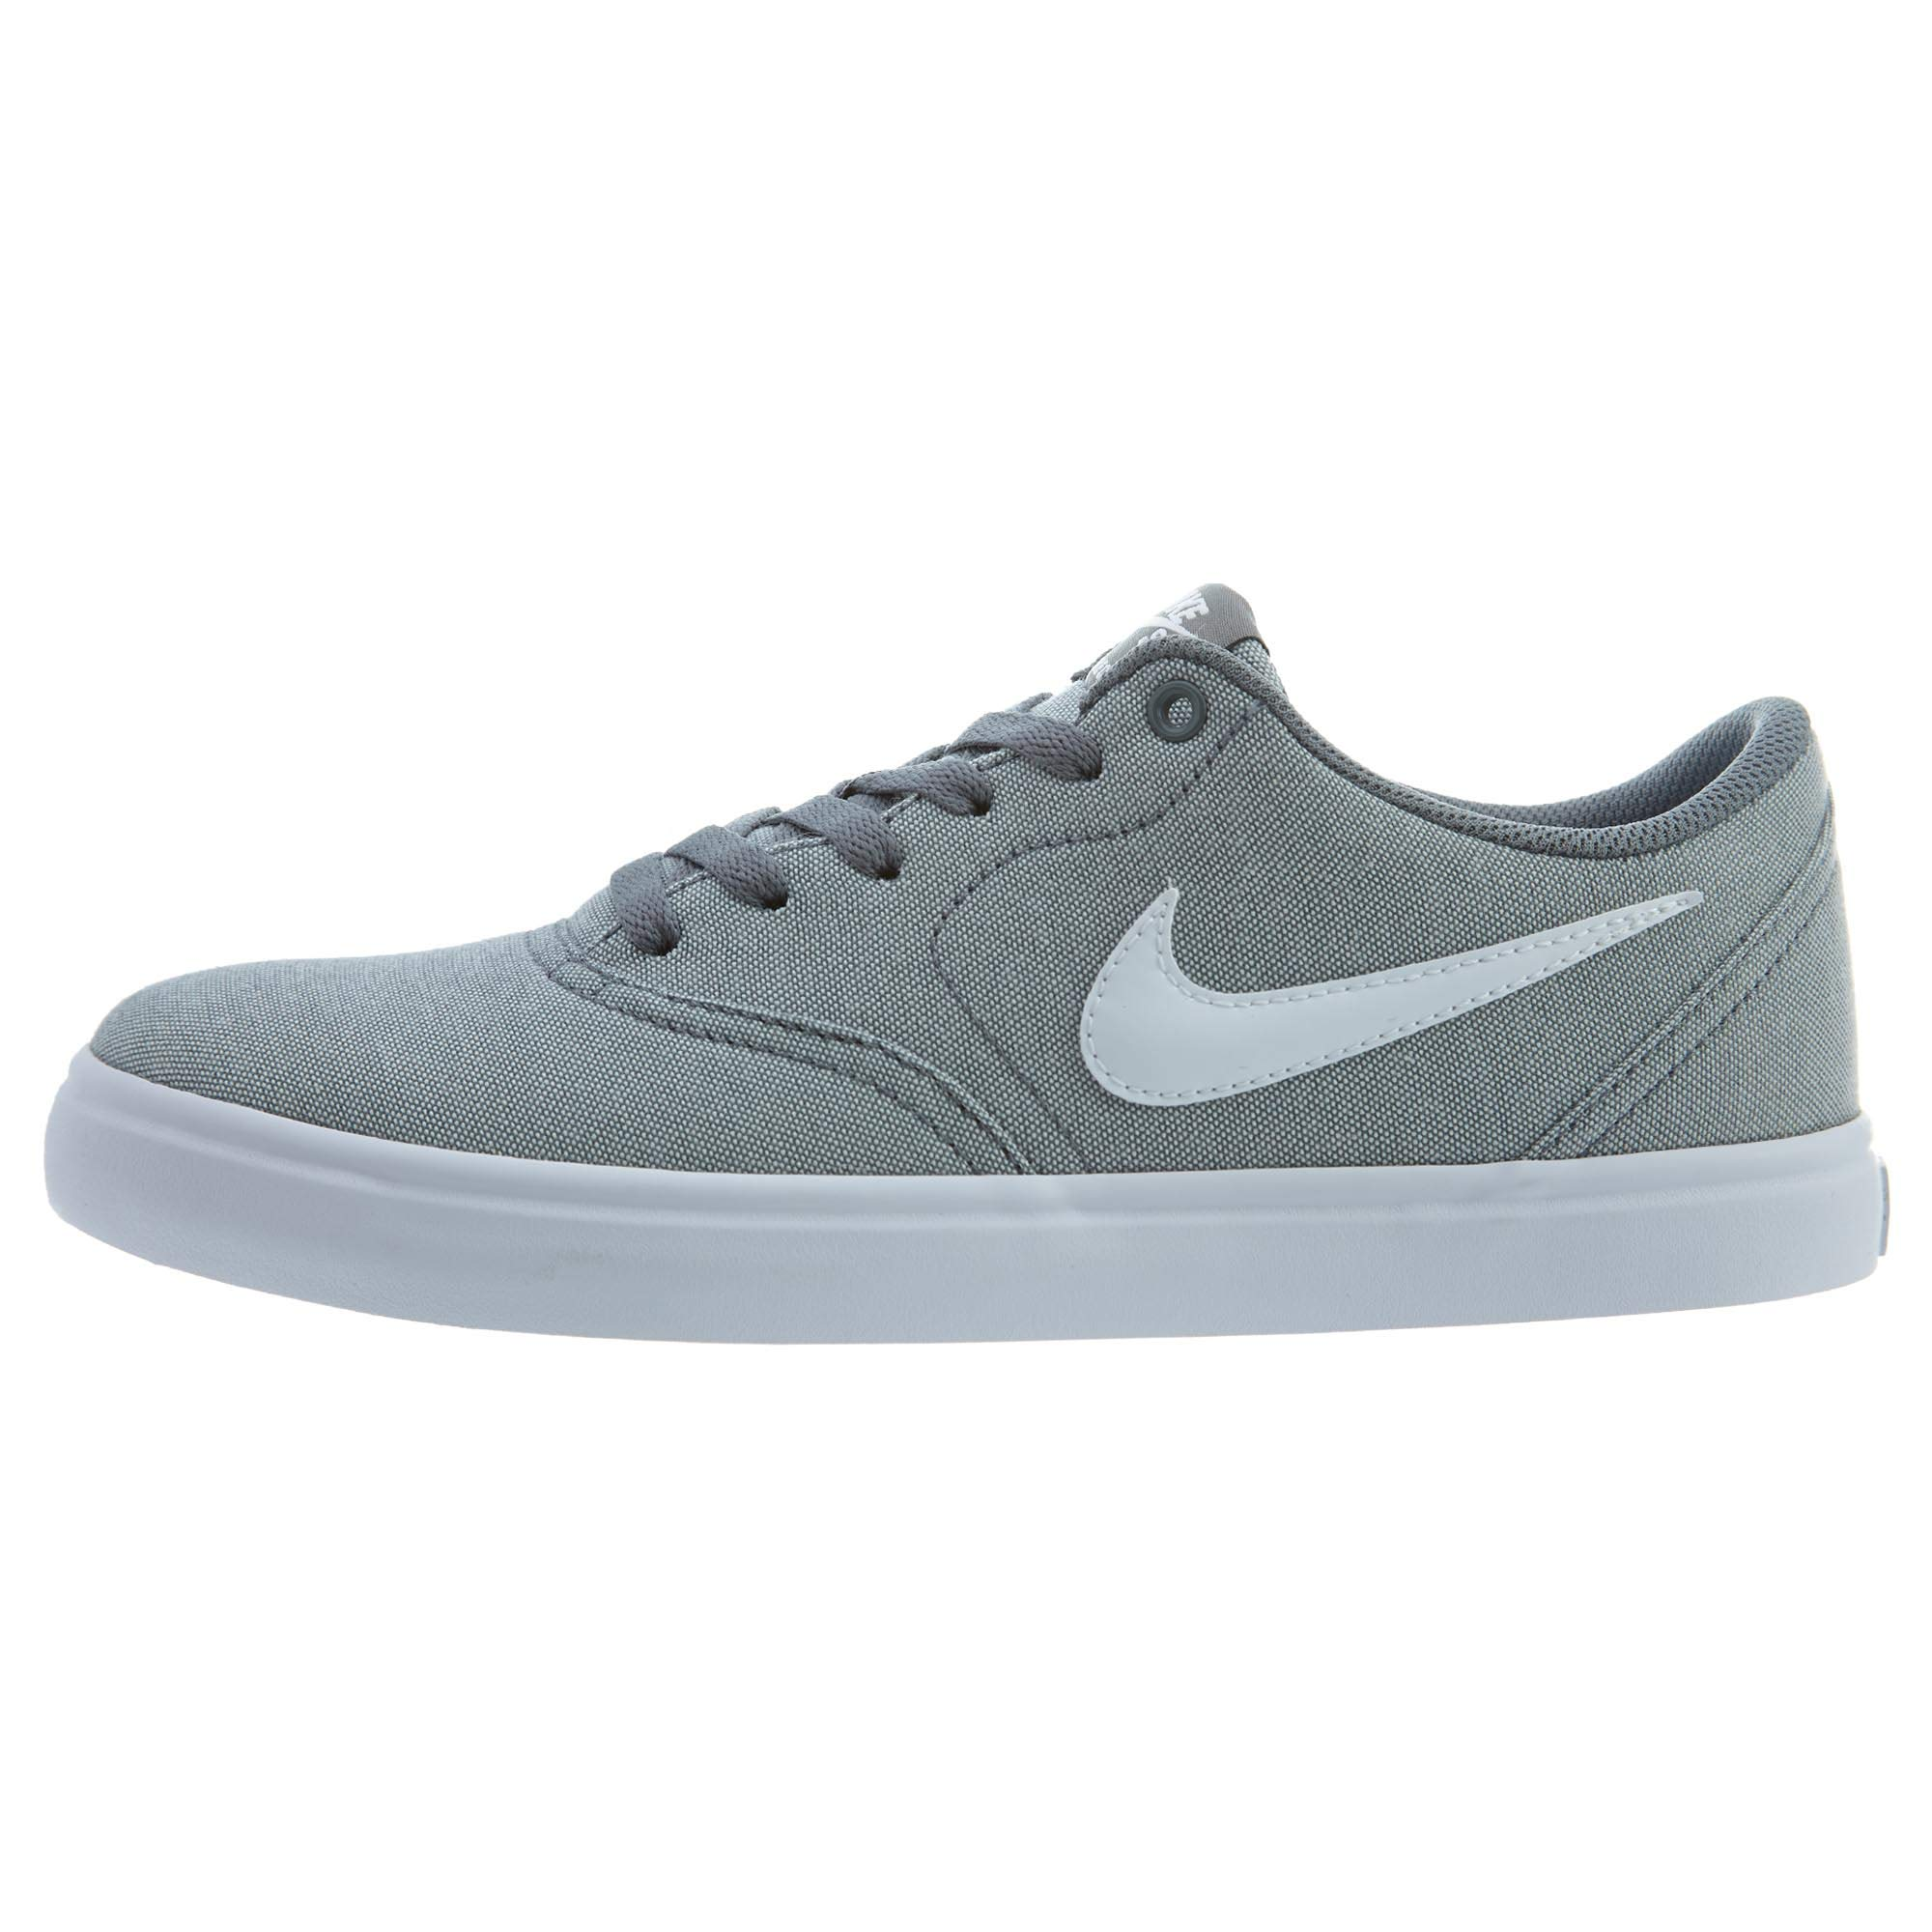 Nike 843896-003: SB Check Solar Canvas Mens Cool Grey/White Sneakers (10.5 D(M) US)